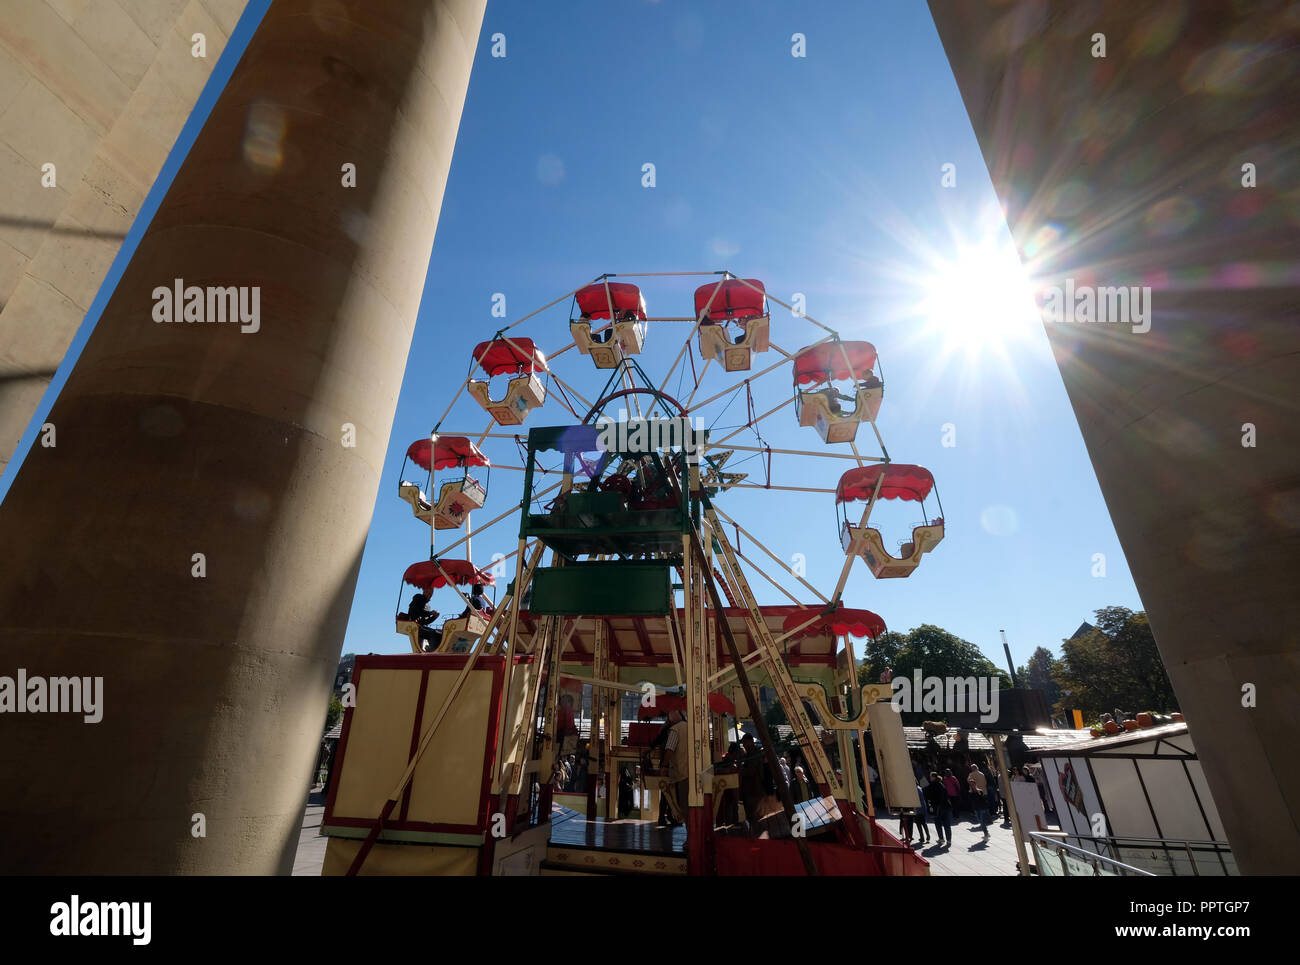 27 September 2018, Baden-Wuerttemberg, Stuttgart: In the bright sunshine on the Schlossplatz, an ancient chain carousel rotates through the columns of the king's building. The ride is part of the Historical Folk Festival, which is held on the occasion of the 200th anniversary of the Stuttgarter Wasen. Photo: Bernd Weißbrod/dpa Stock Photo